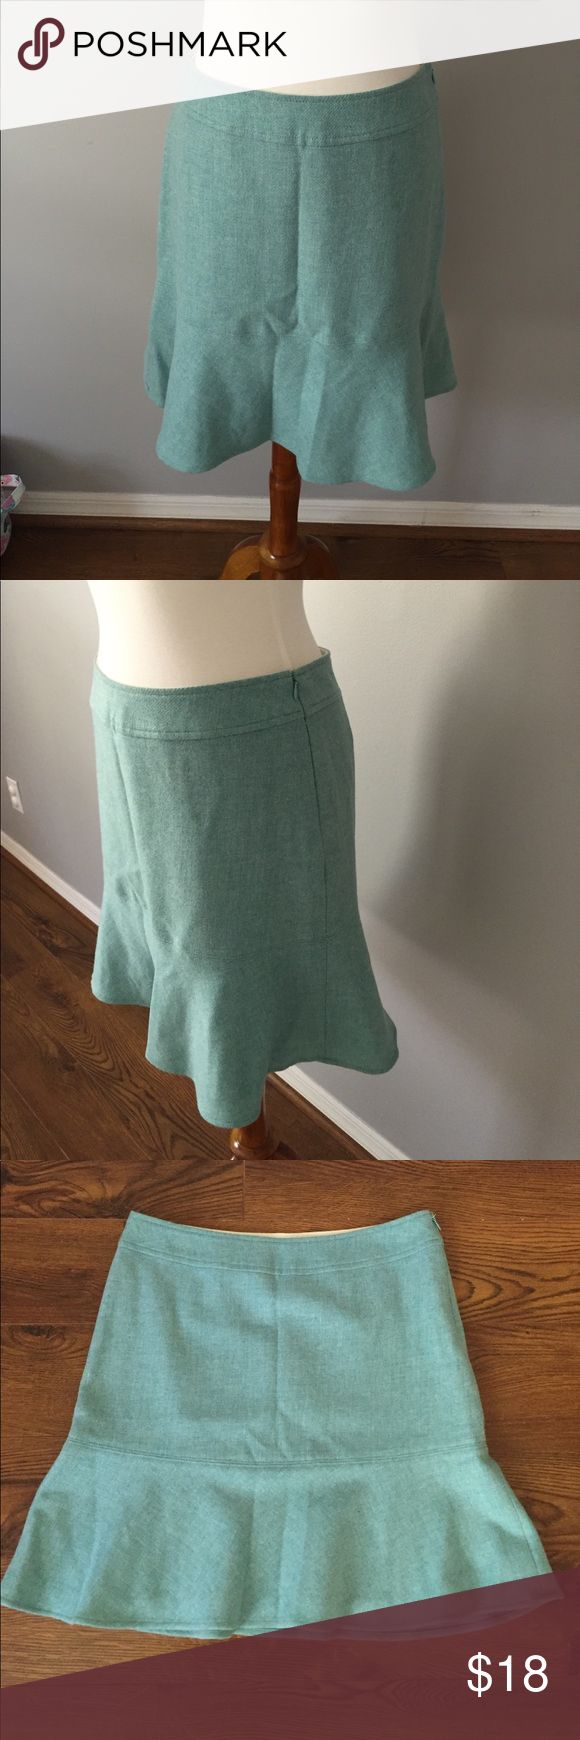 Gap wool skirt Sweet and sexy wool skirt perfect for fall and winter!  Great worn with heels or boots, for work or play.  Hits just above knee and is fully lined.  Dry clean only.  NOTE: side zipper works perfectly but hook closure at the top is missing. GAP Skirts Mini